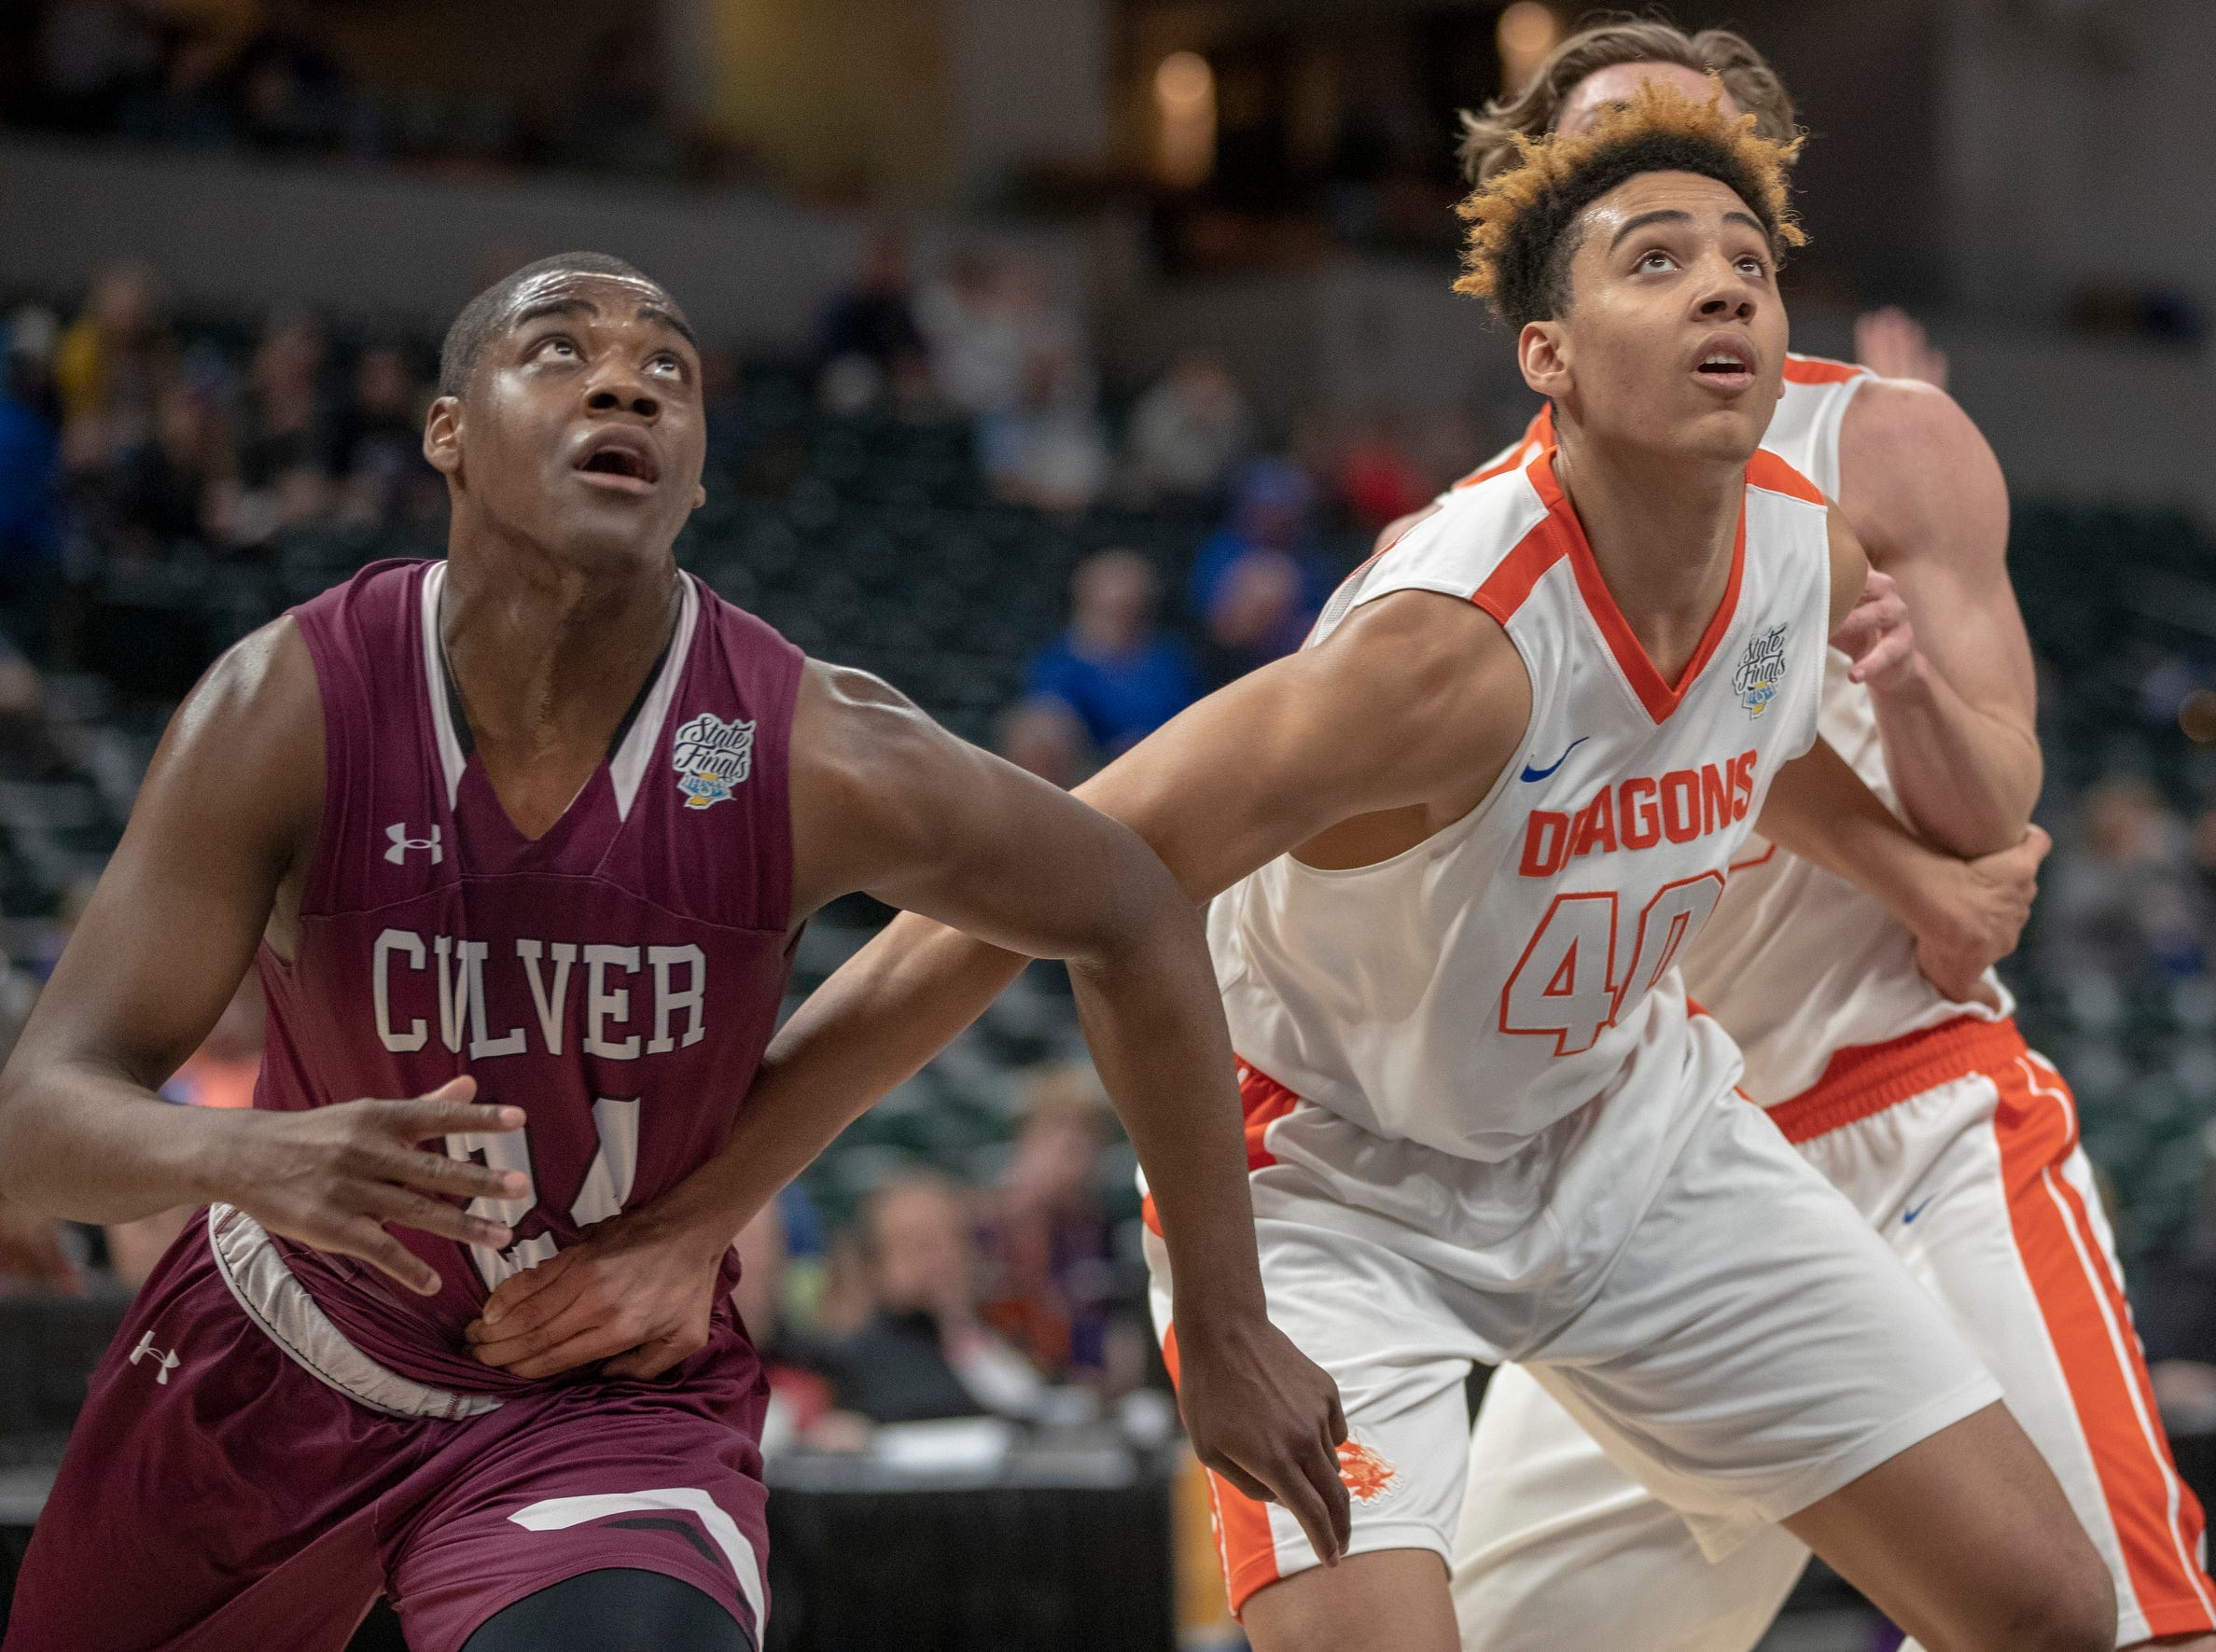 Deontae Craig (left), of Culver Academies and Trey Kaufman of Silver Creek Dragons look for a rebound in the Class 3S Boys Basketball State Final, Bankers Life Fieldhouse, Indianapolis, Saturday, March 23, 2019.